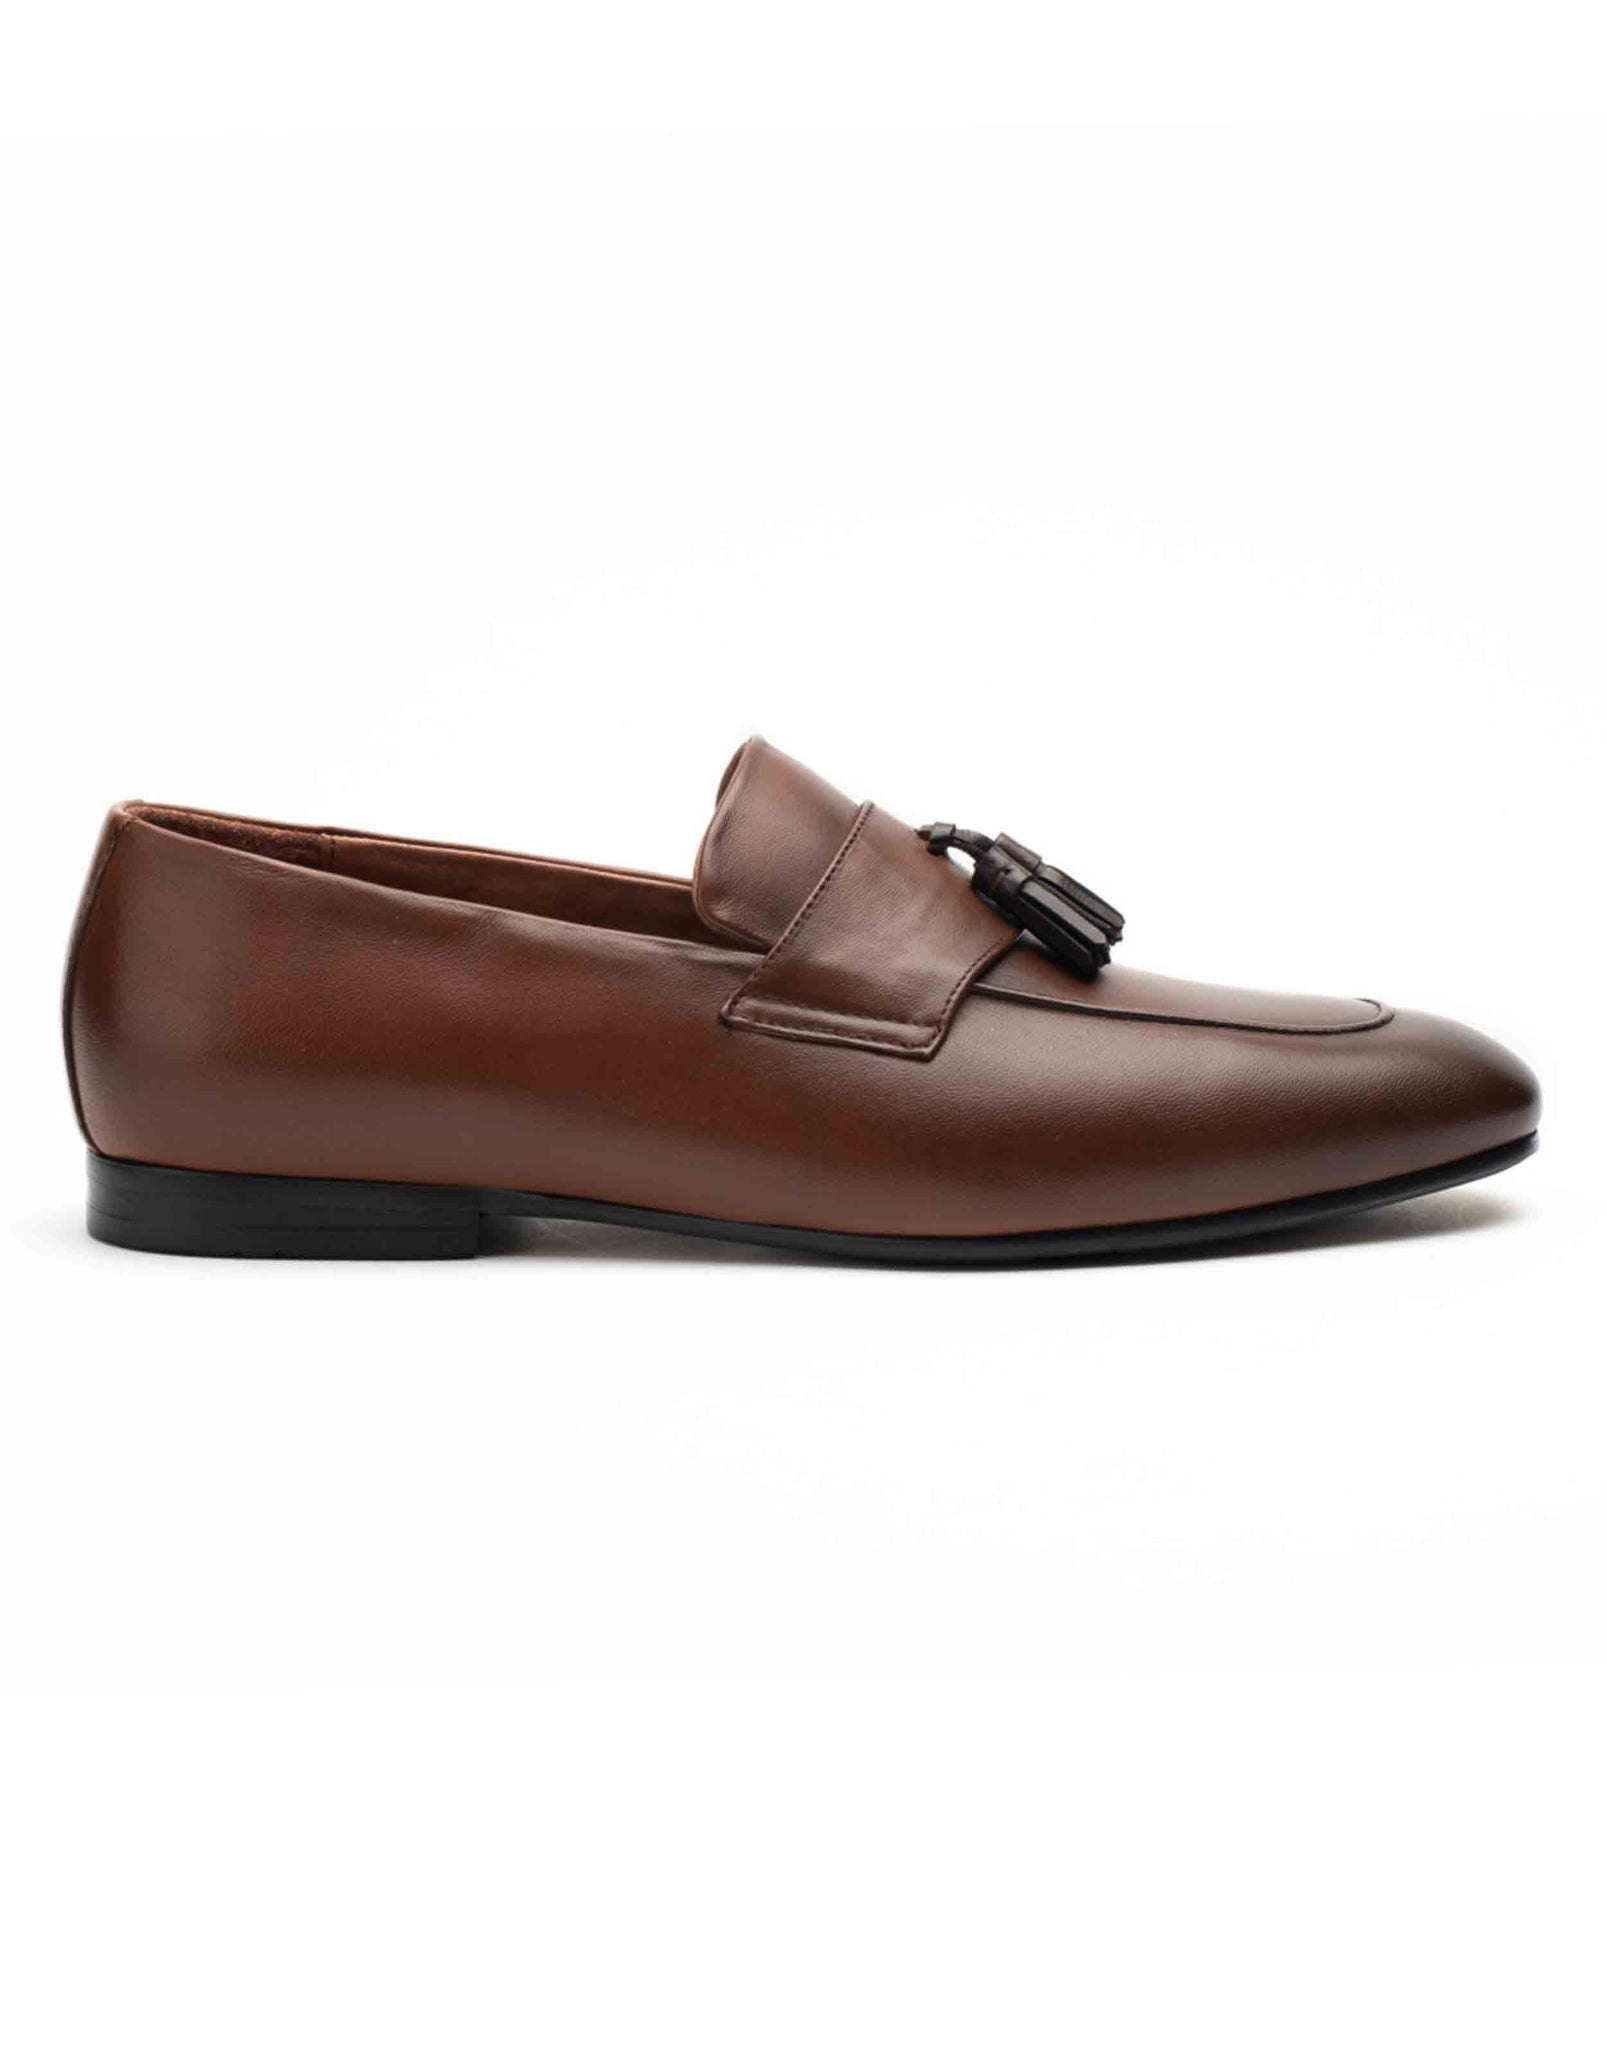 Crest Tanned Tassel Loafers